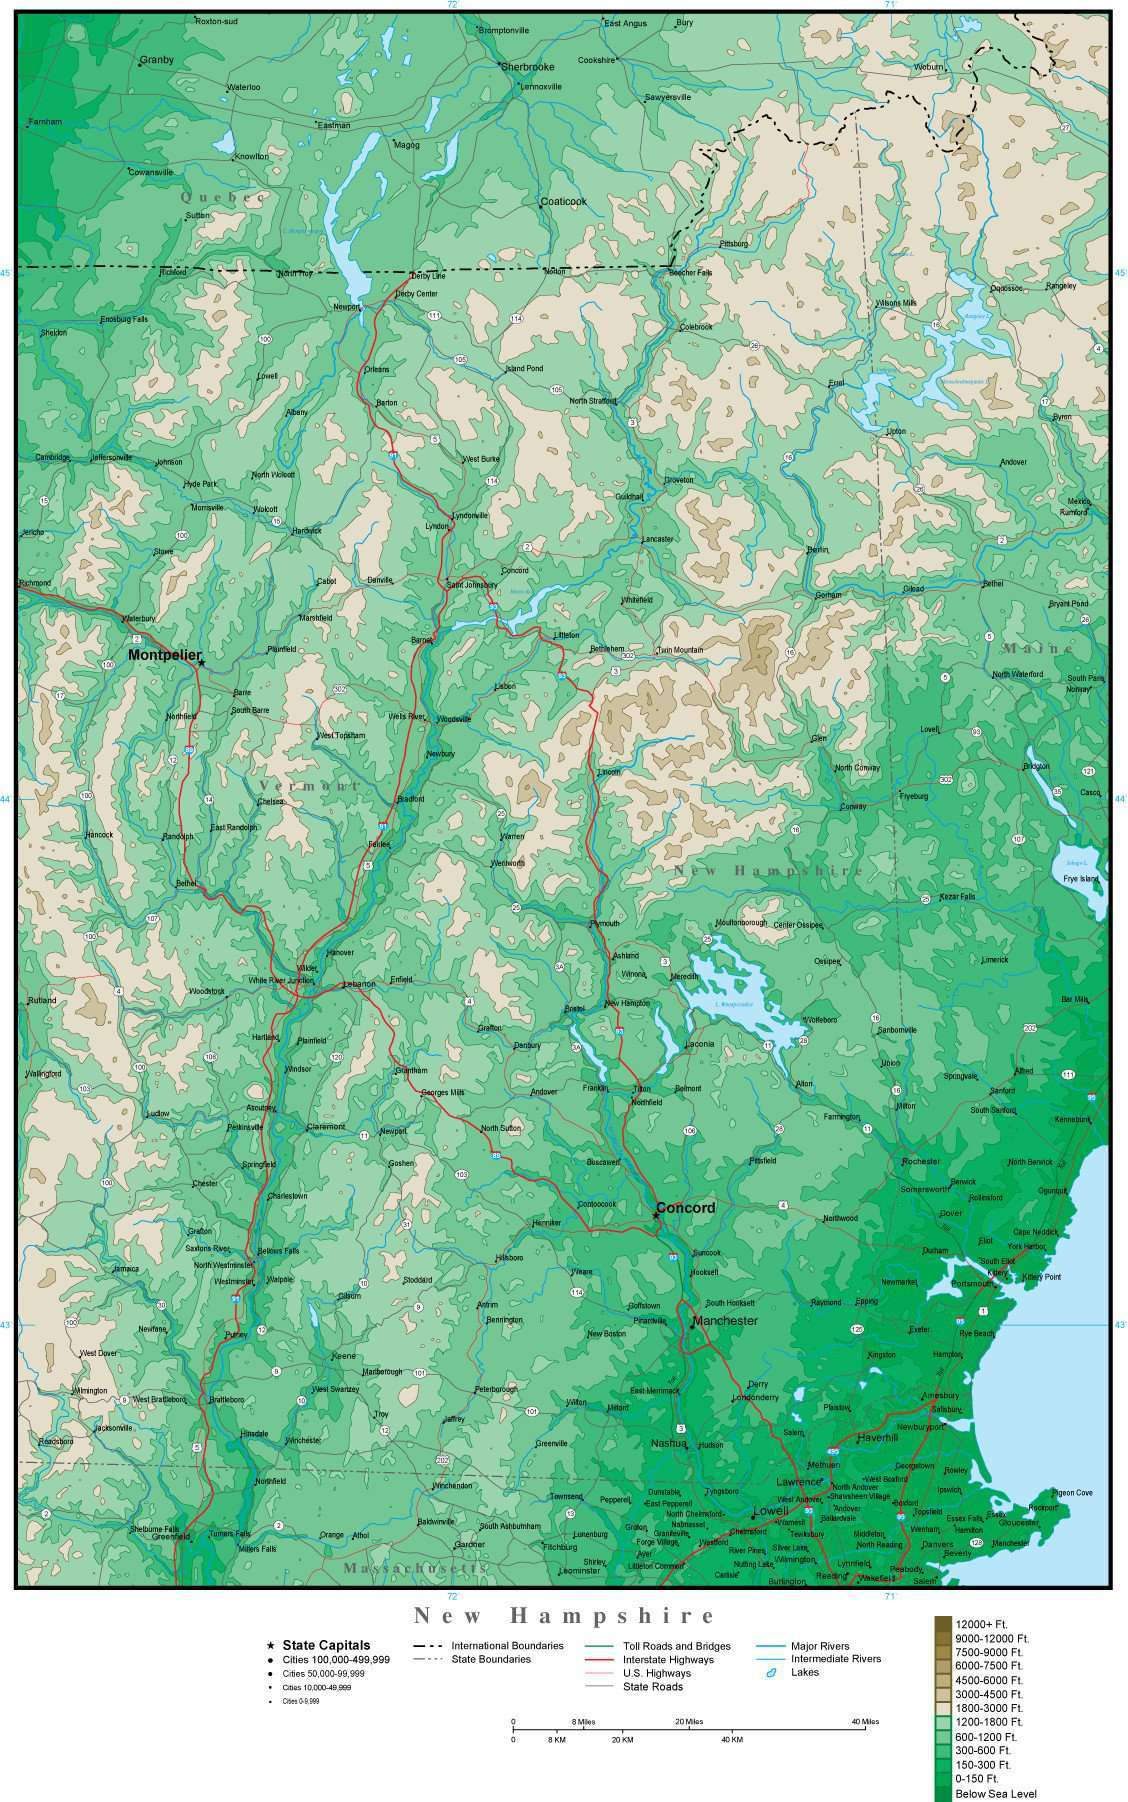 Nh Usa Map.Digital New Hampshire Contour Map In Adobe Illustrator Vector Format